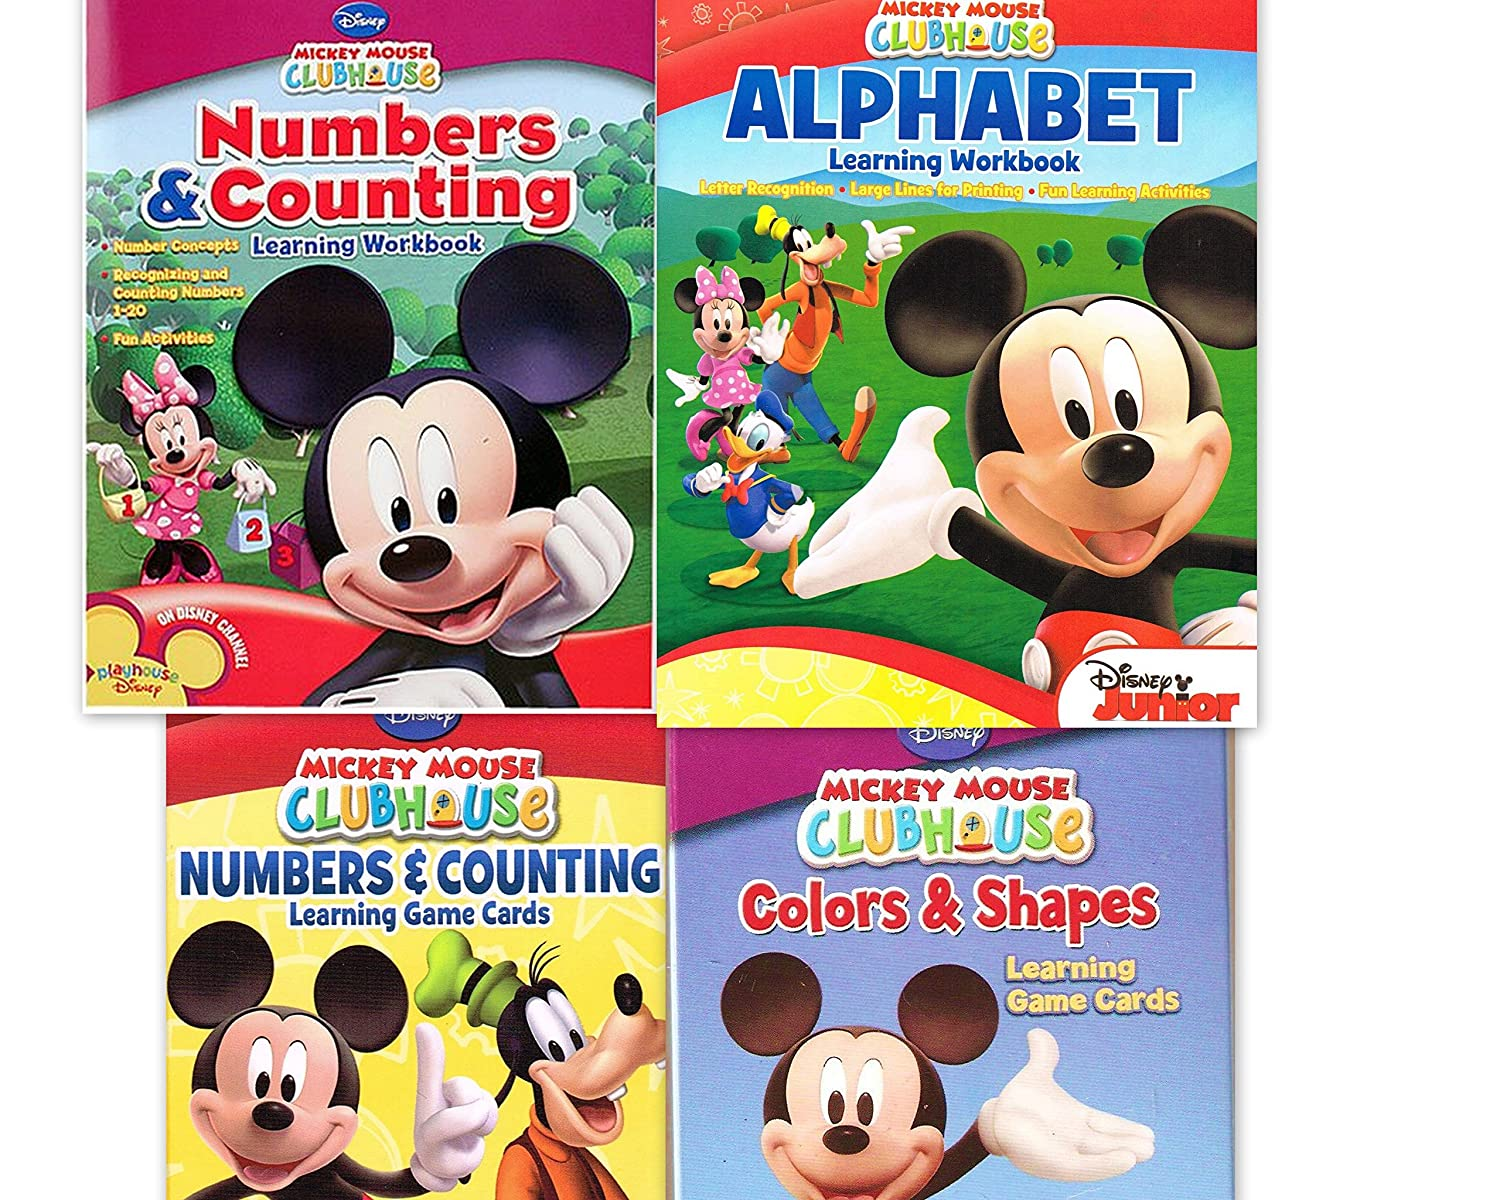 Mickey Mouse Clubhouse Workbook and Flashcard Learning Bundle Set of 4 includes 1 Numbers Counting Learning Flash Cards 1 Colors and Shapes Learning Flash Cards 1 Alphabet Learning Workbook 1 Numbers and Counting Learning Workbook by Disney